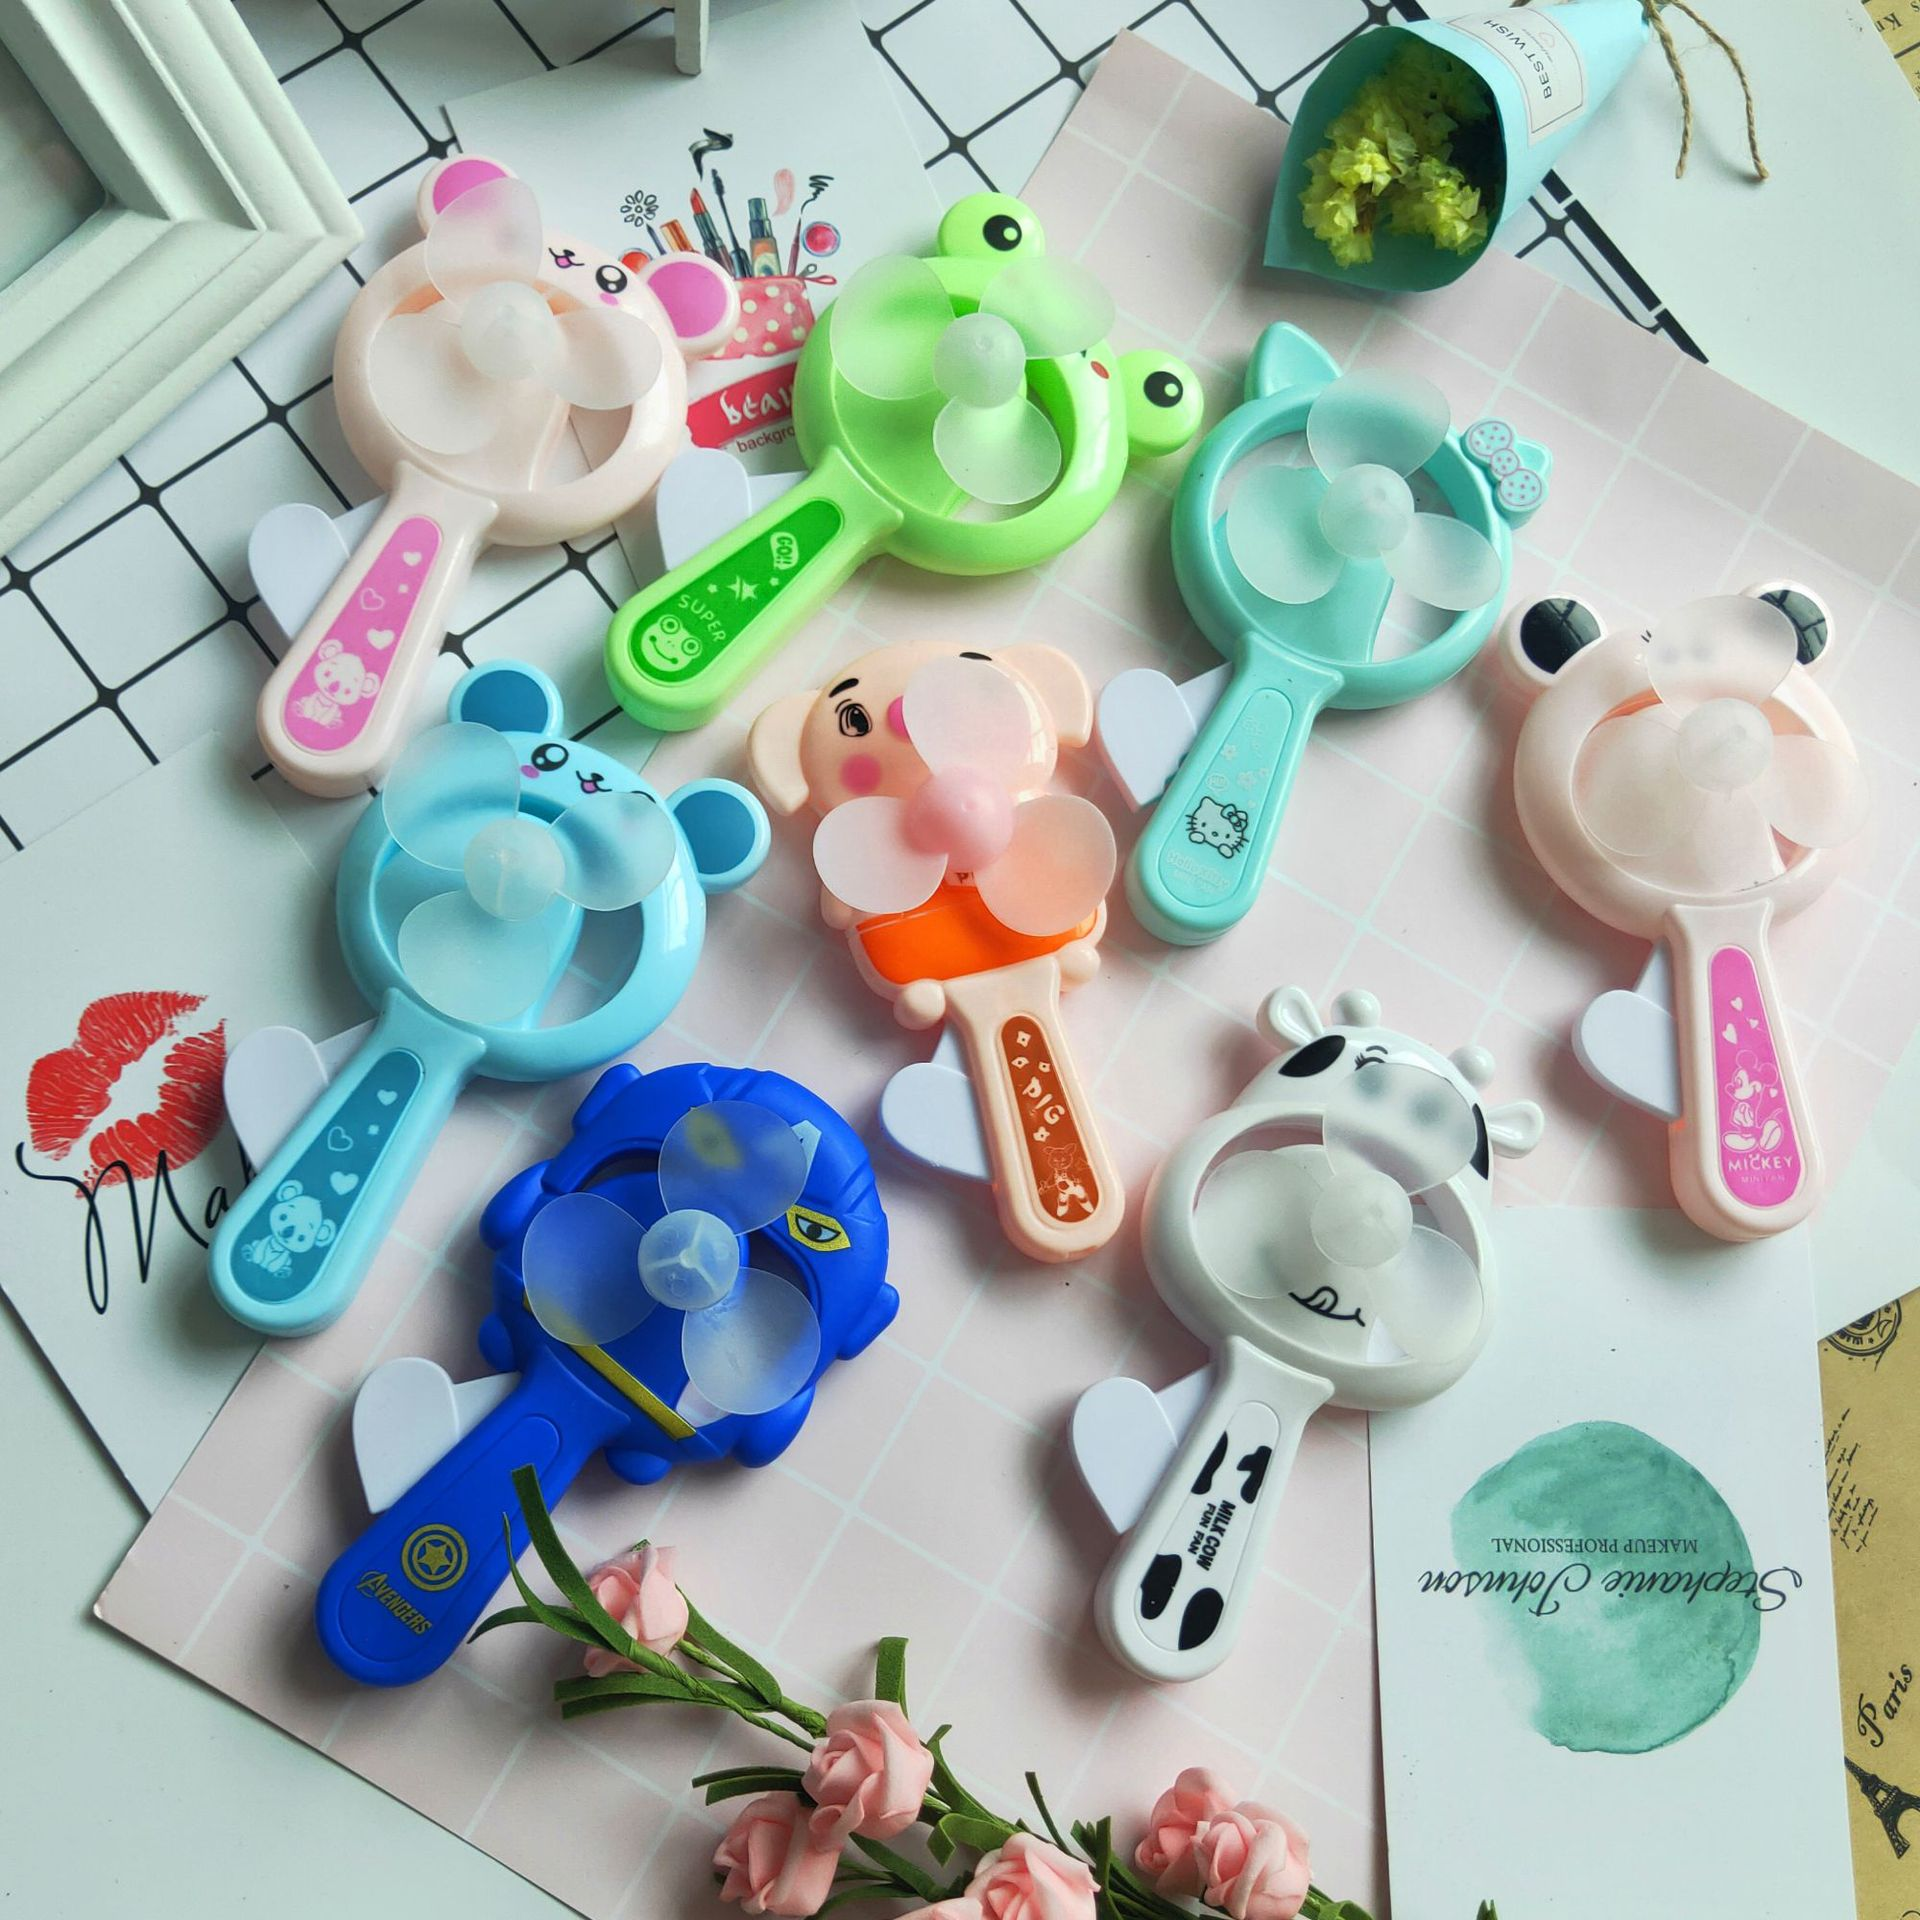 1pc Funny Toys Cartoon Small Fan Hand Pressure Fans Creative Cartoon Shape Manual Small Fan Cool Portable Hand-held Gifts